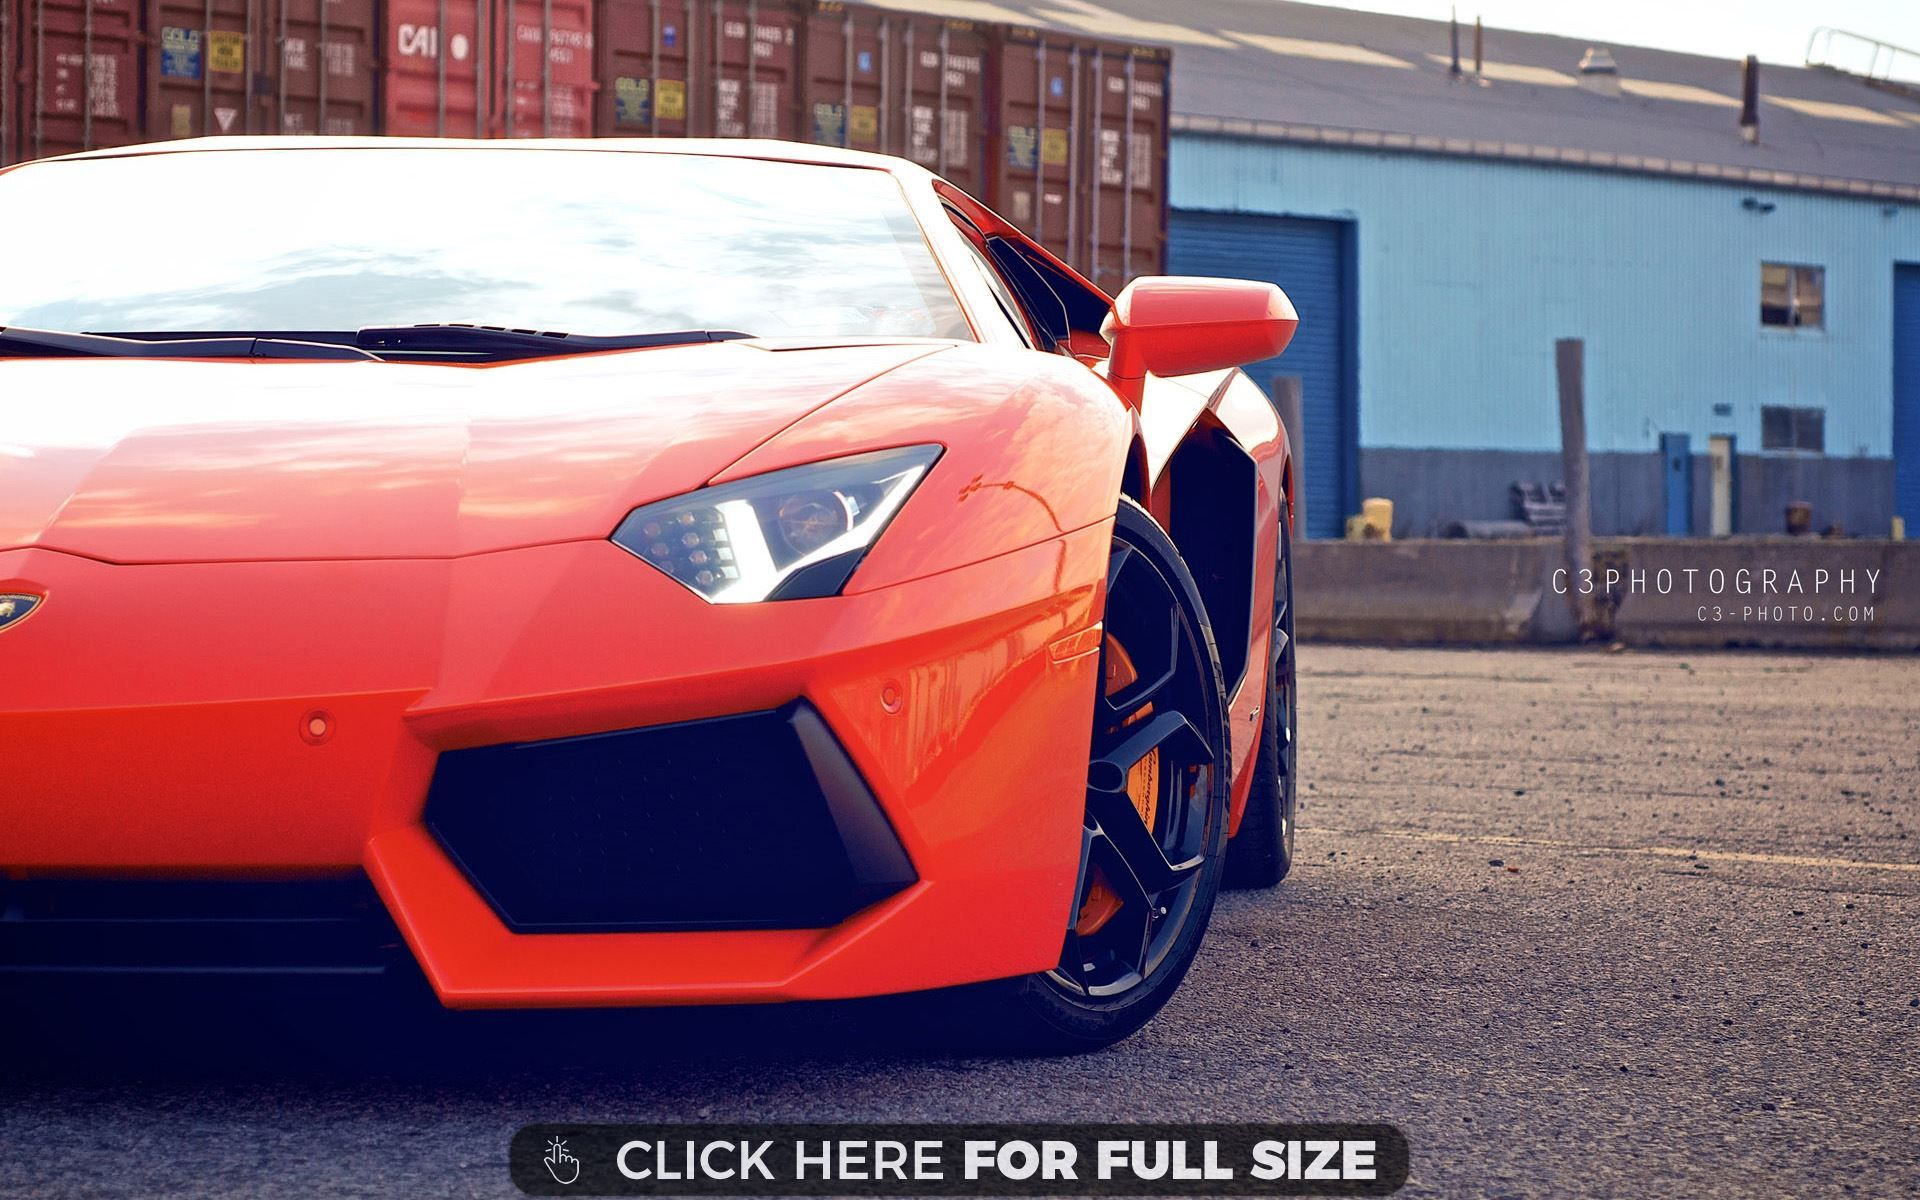 Most Inspiring Wallpaper Mac Lamborghini - 66a9a4bd814e2162fec2f278822bb136  2018_711797.jpg